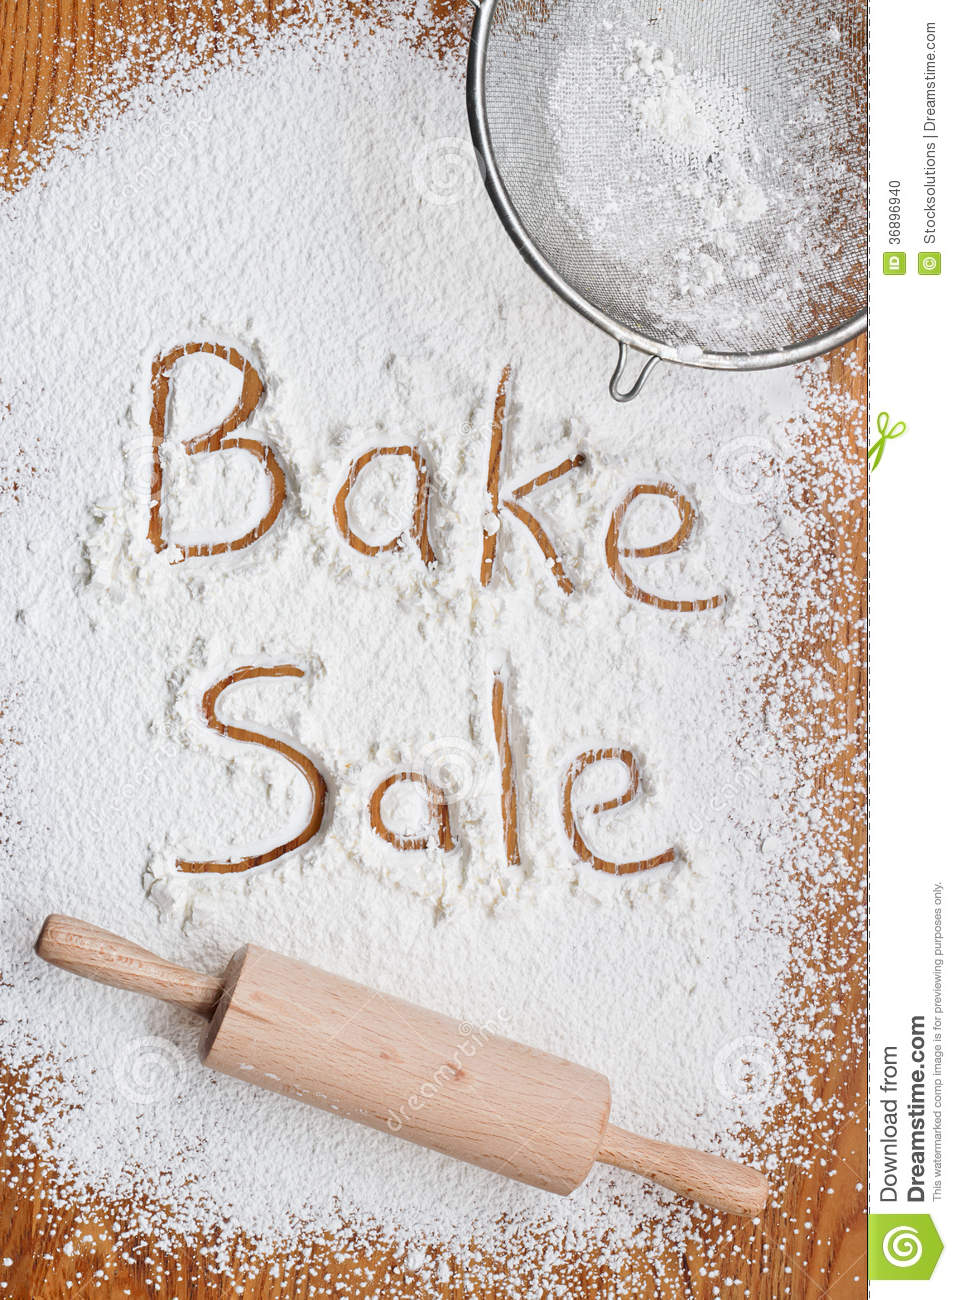 It's just an image of Punchy Free Printable Bake Sale Signs